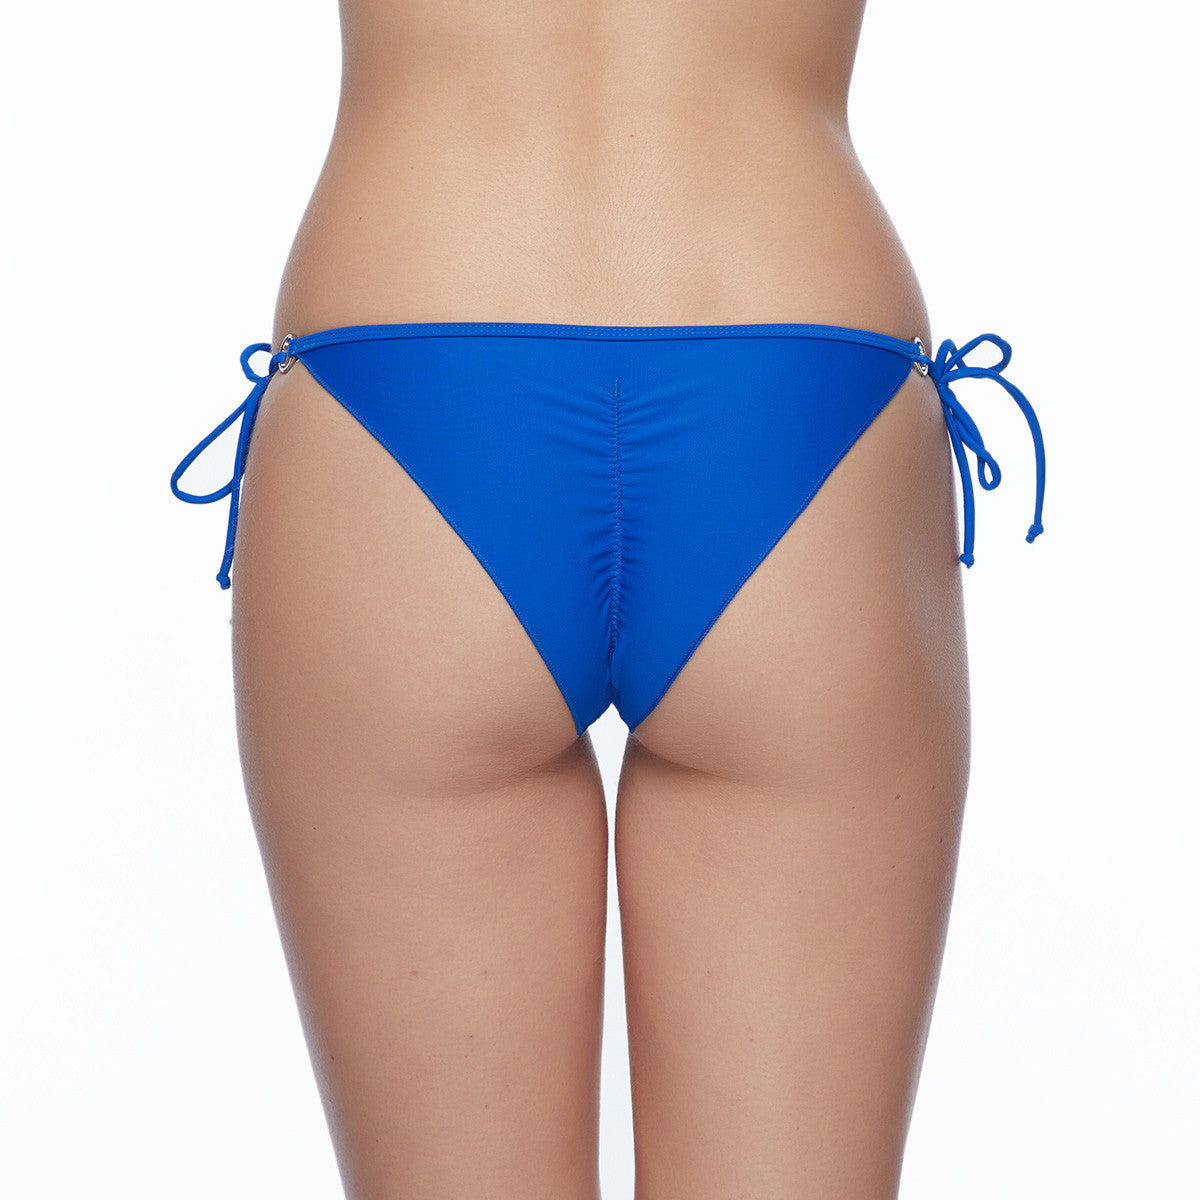 Body Glove Smoothies Brasilia bikini bottoms Side tie bikini bottoms Adjustable side ties with ring hardware Center back seam with ruching Fully lined Metal Body Glove heart logo badge at front hip Nylon/Spandex Hand wash cold Top and bottom sold separately  blue